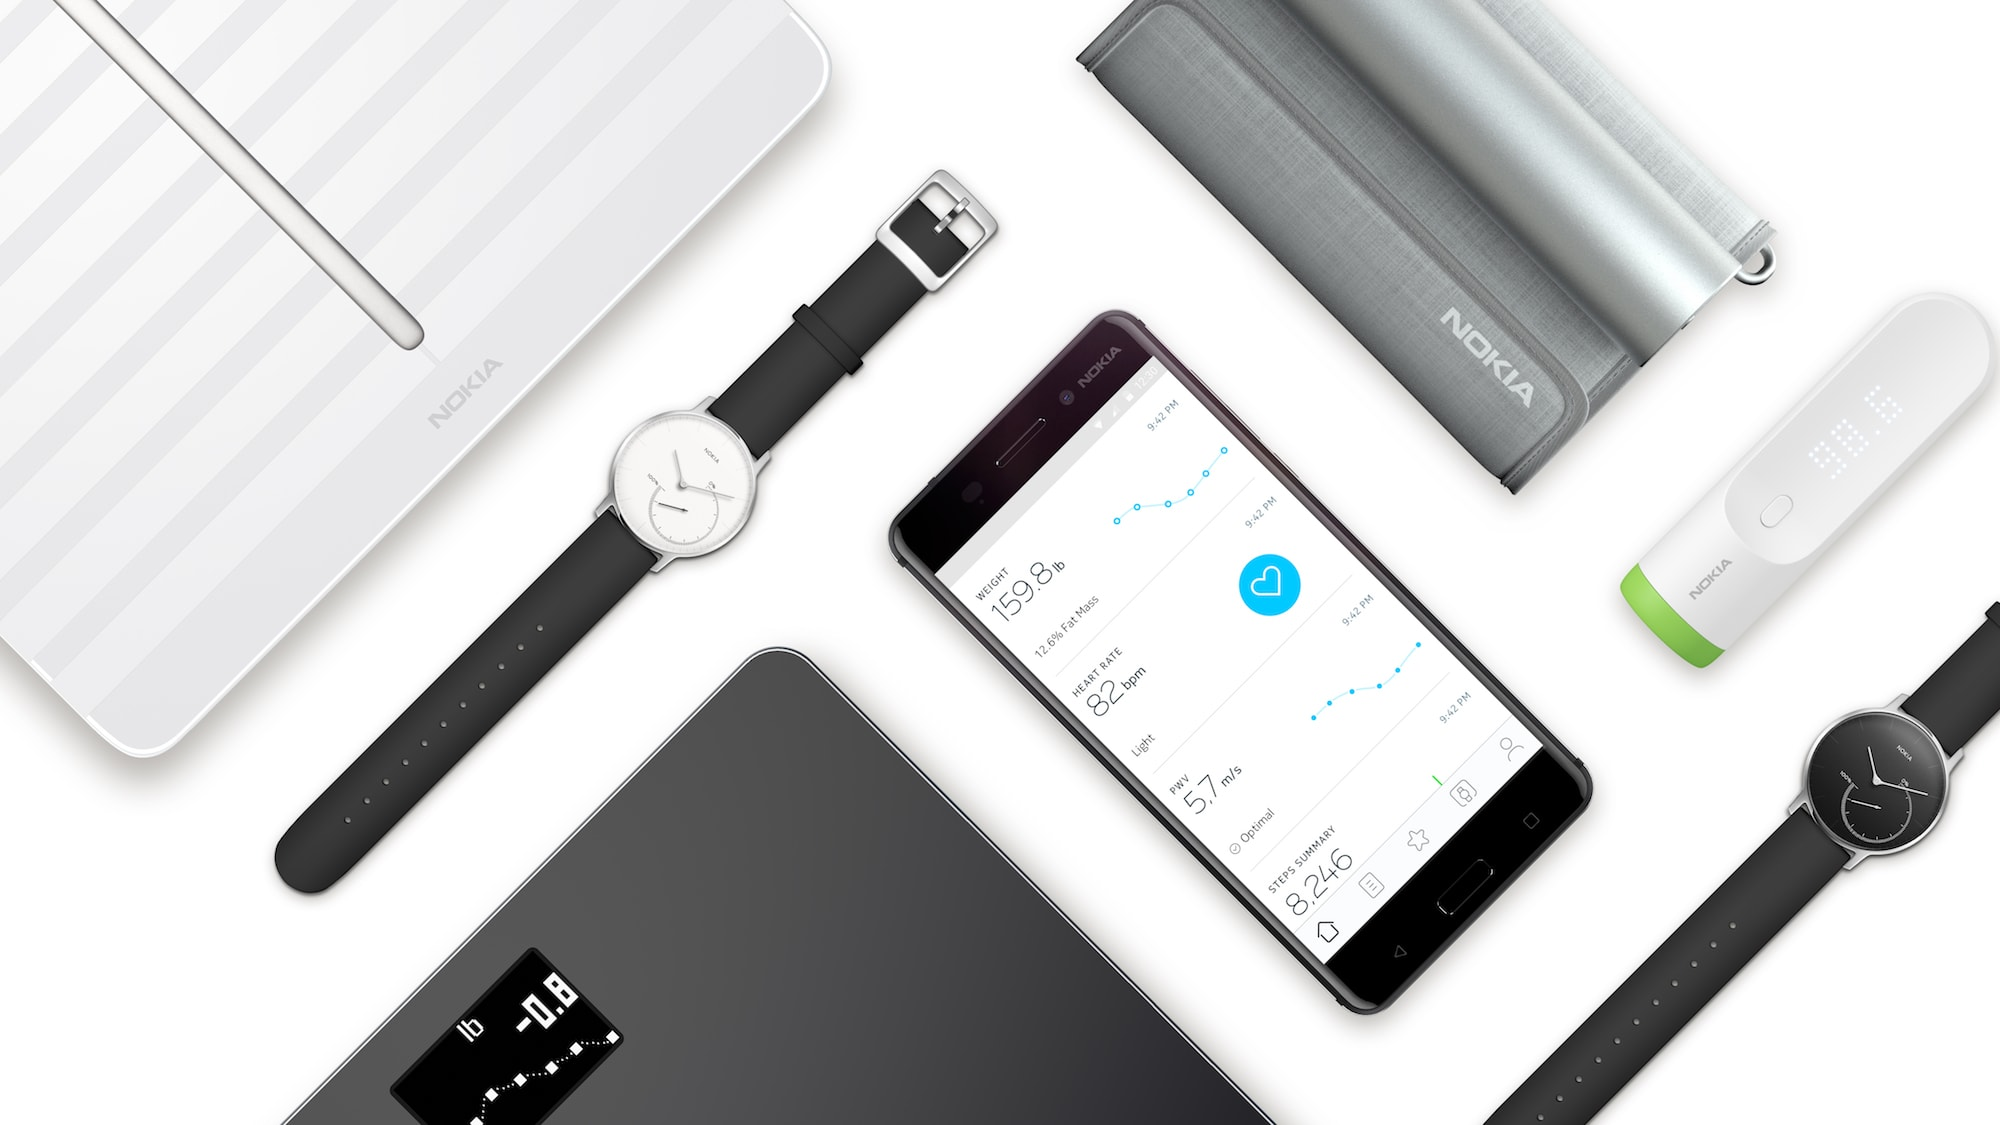 Nokia launches new digital health products as Withings name fades